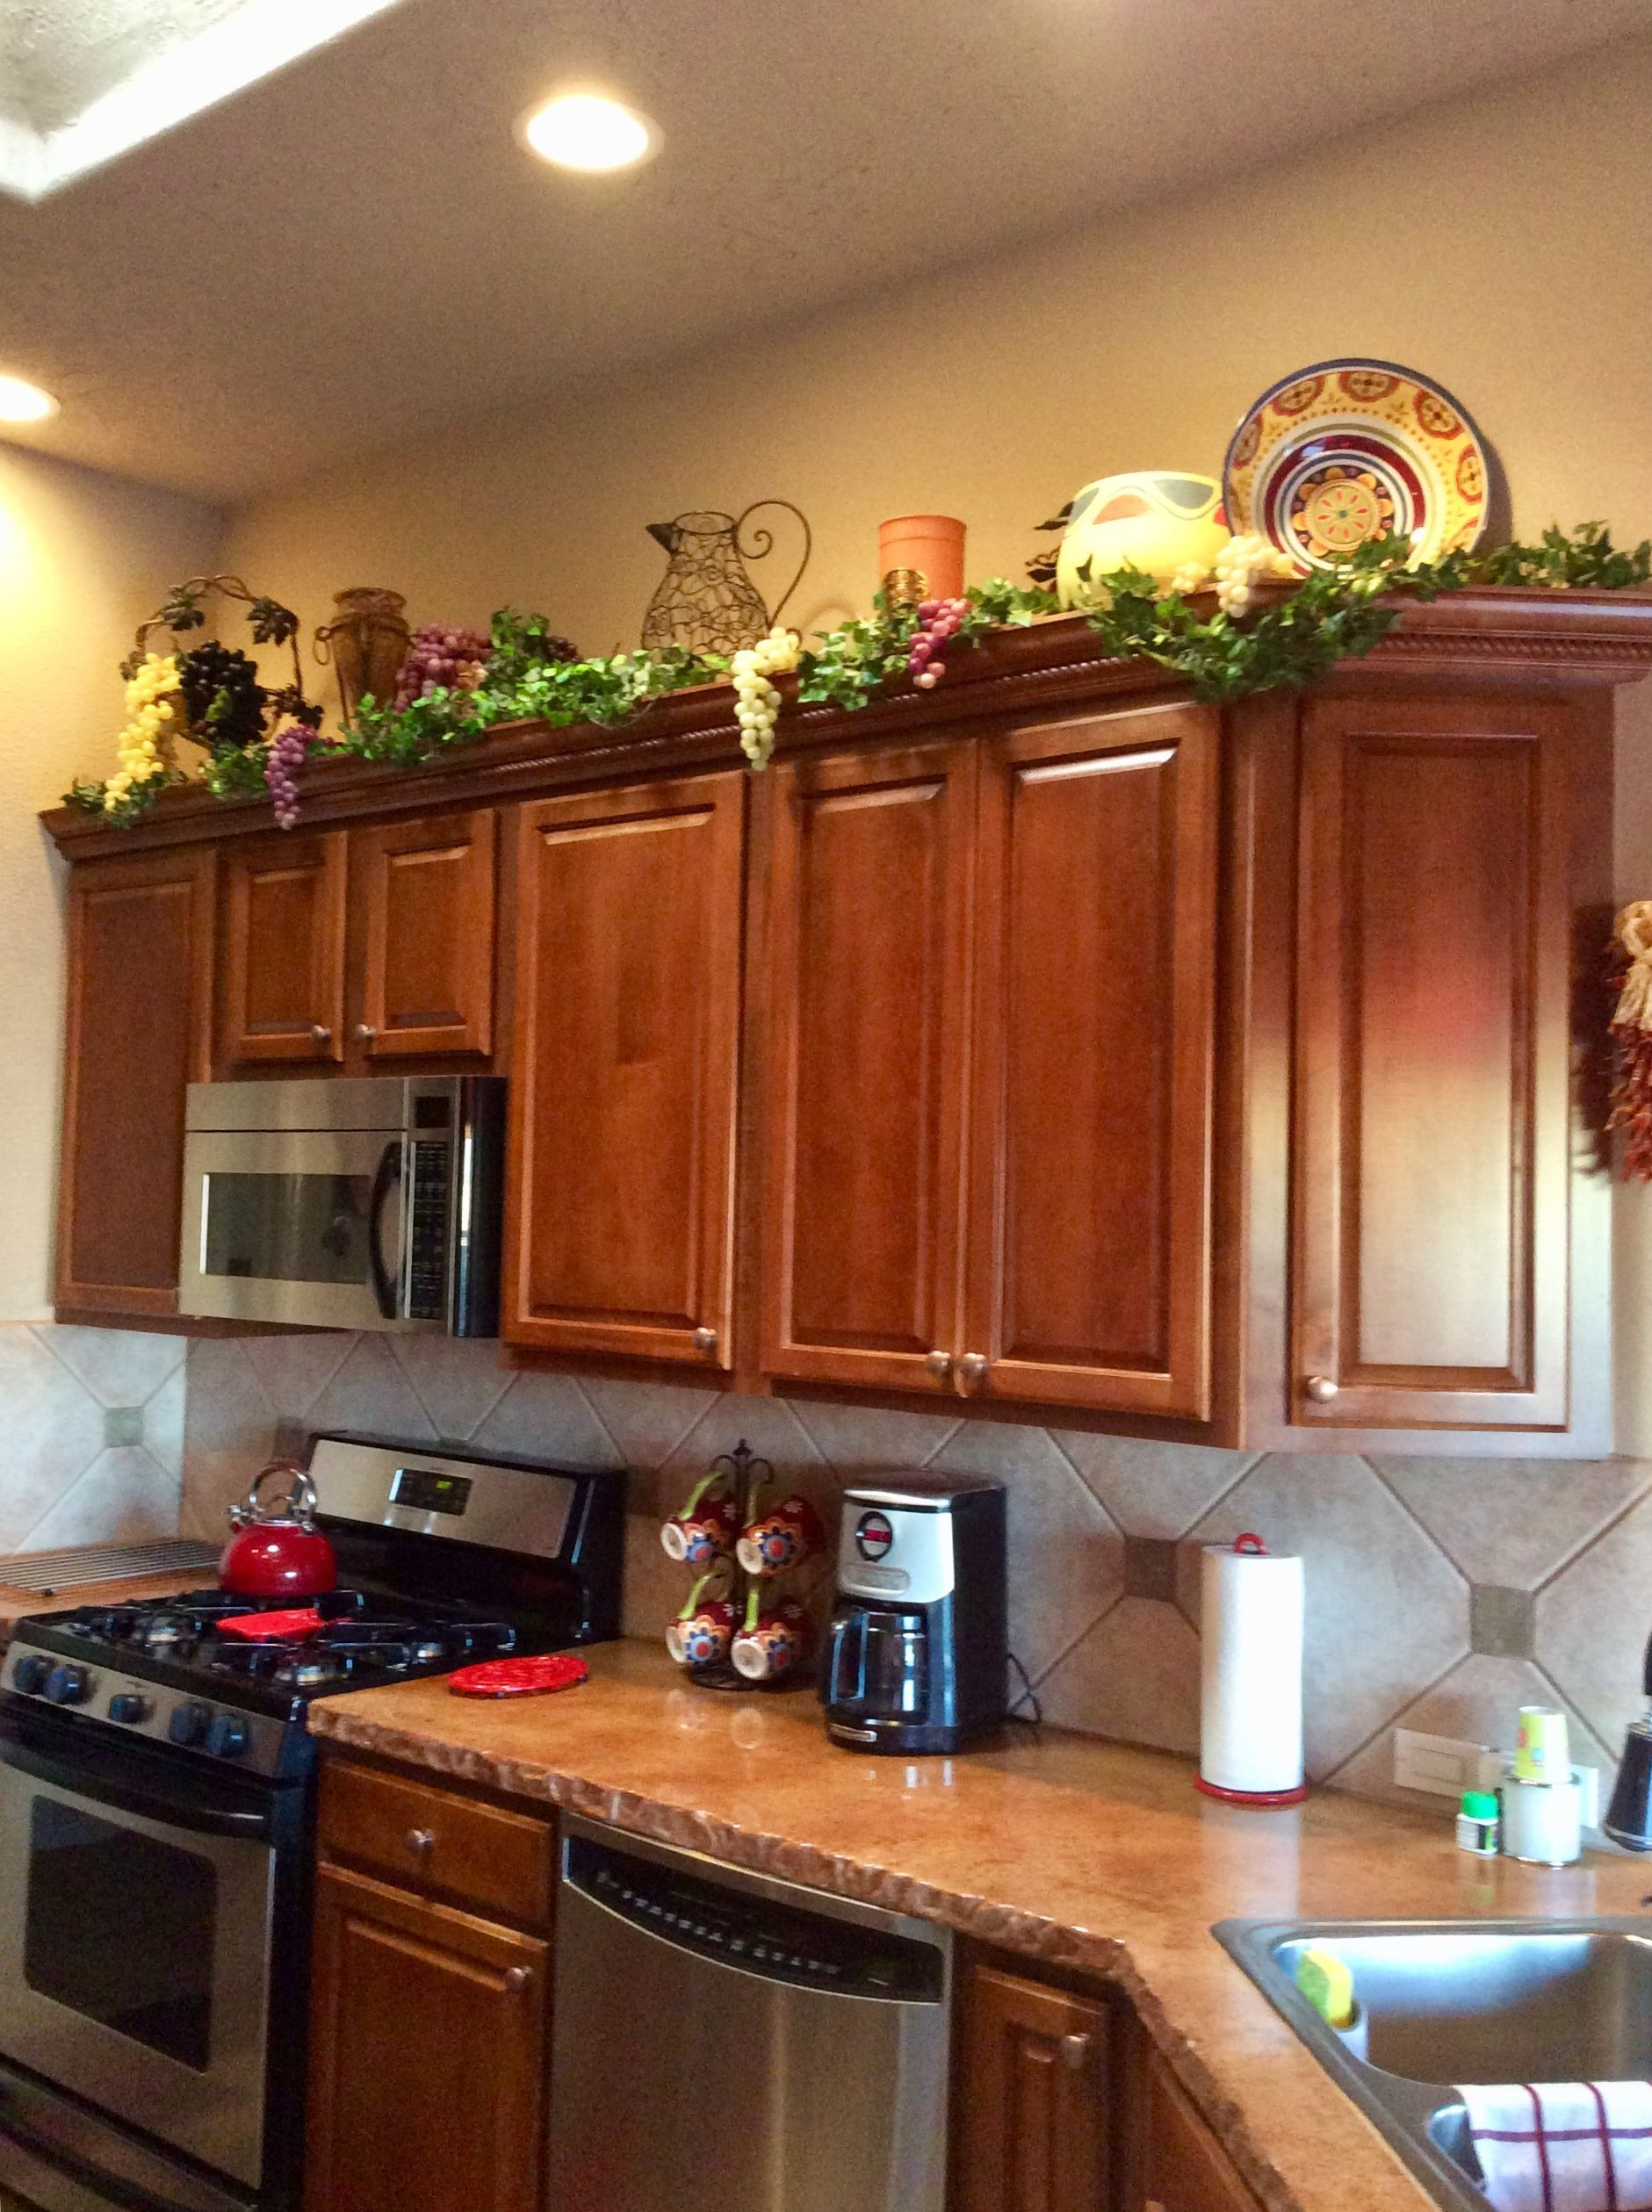 Decorating Above The Kitchen Cabinets Italiankitchencabinets Decorating Above Kitchen Cabinets Above Kitchen Cabinets Tuscan Decorating Kitchen